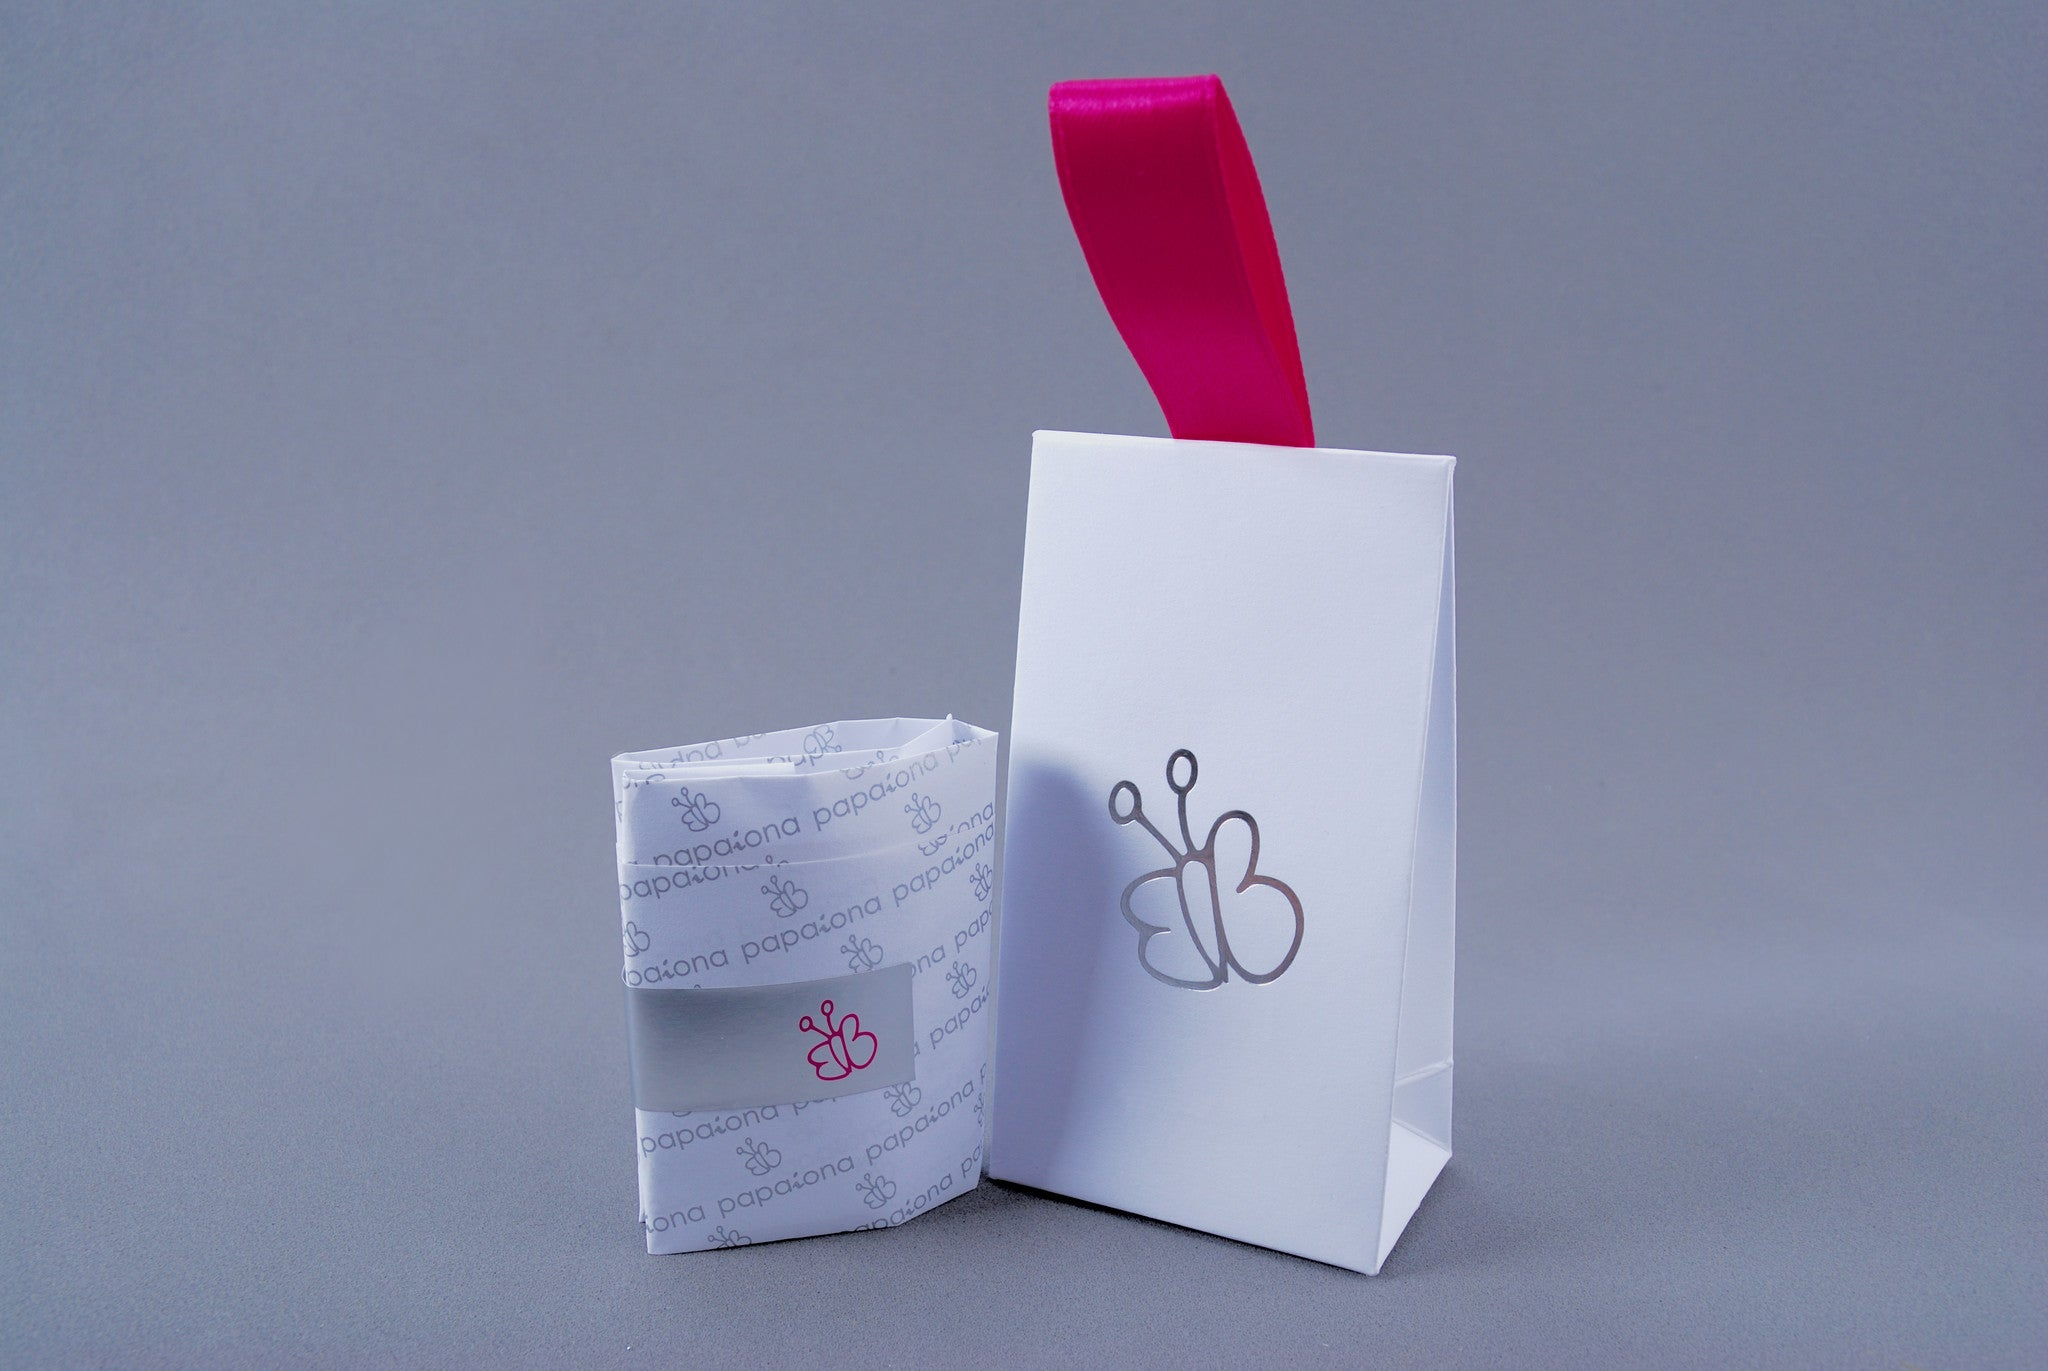 Papaiona packaging